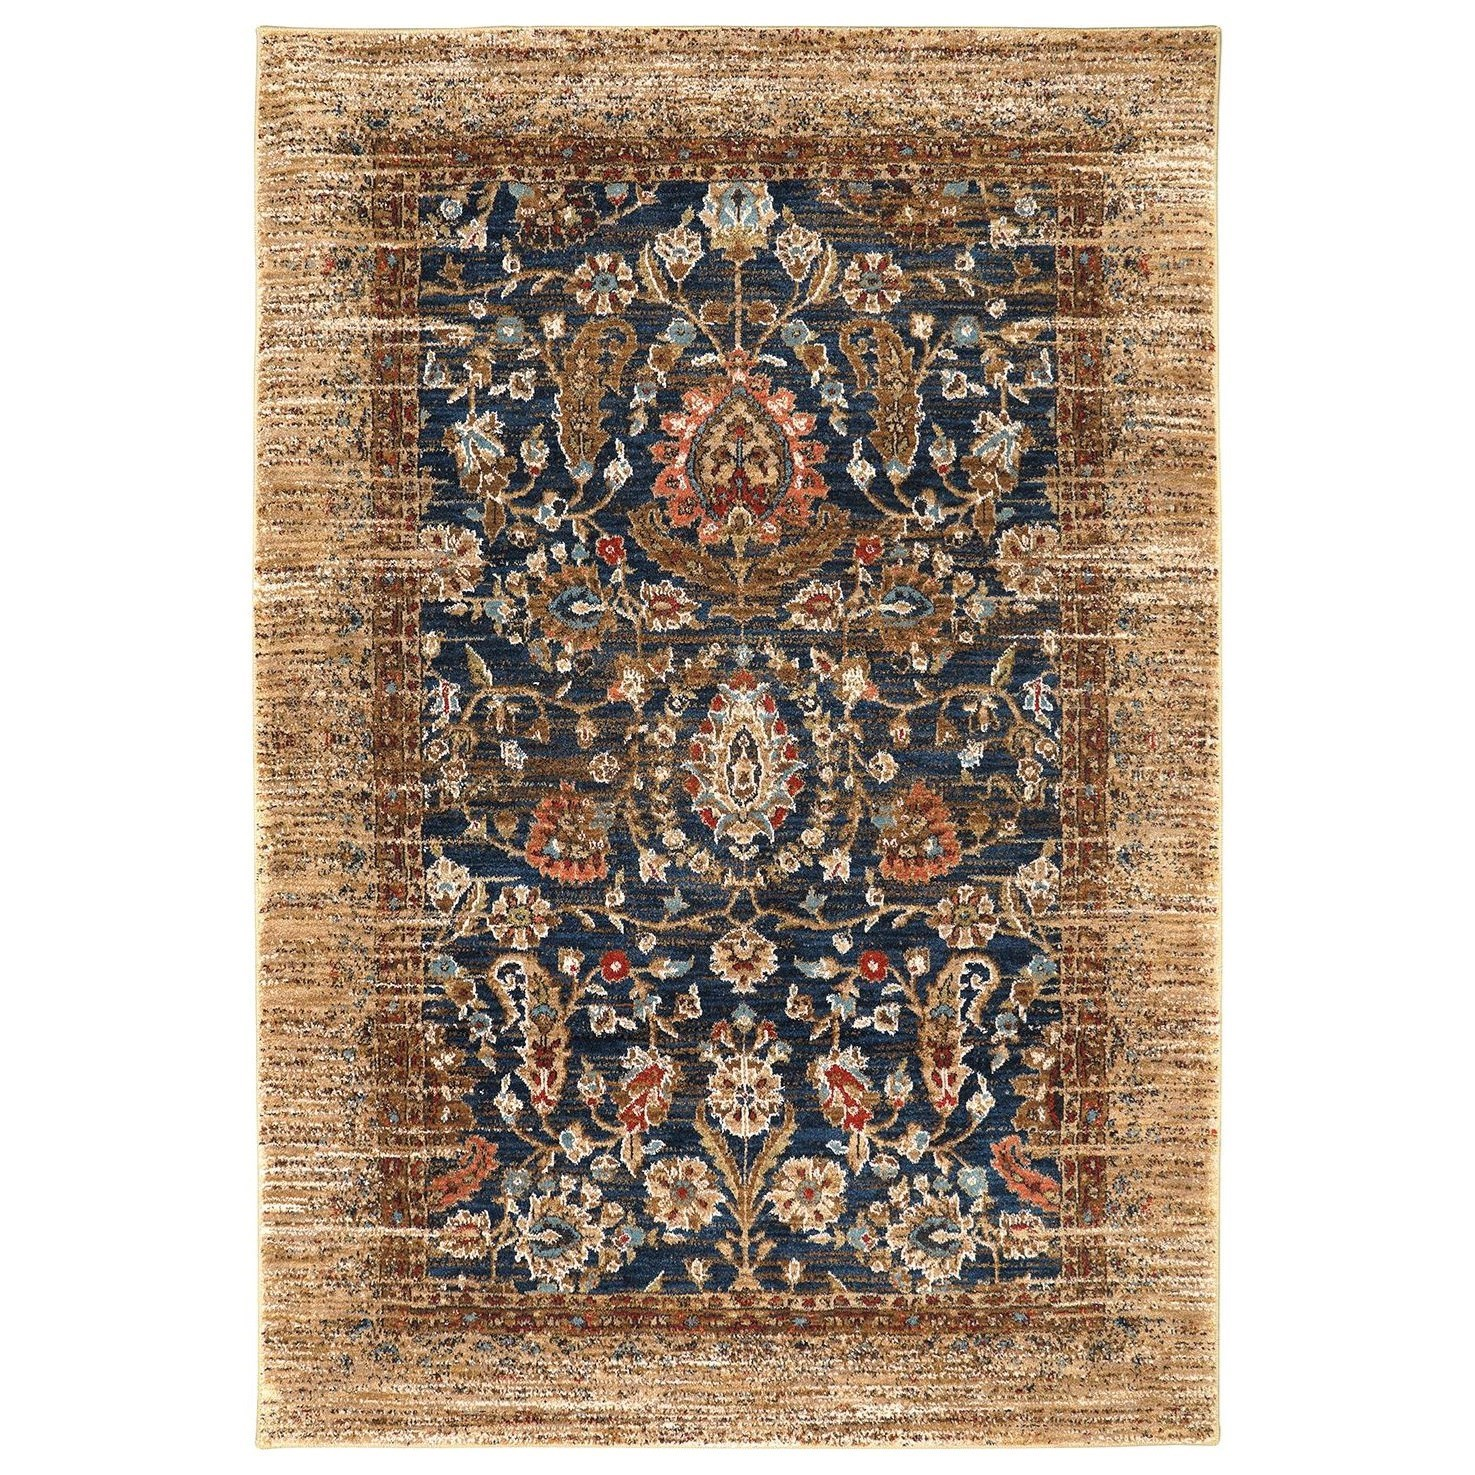 Spice Market 5'3x7'10 Charax Gold Rug by Karastan Rugs at Darvin Furniture